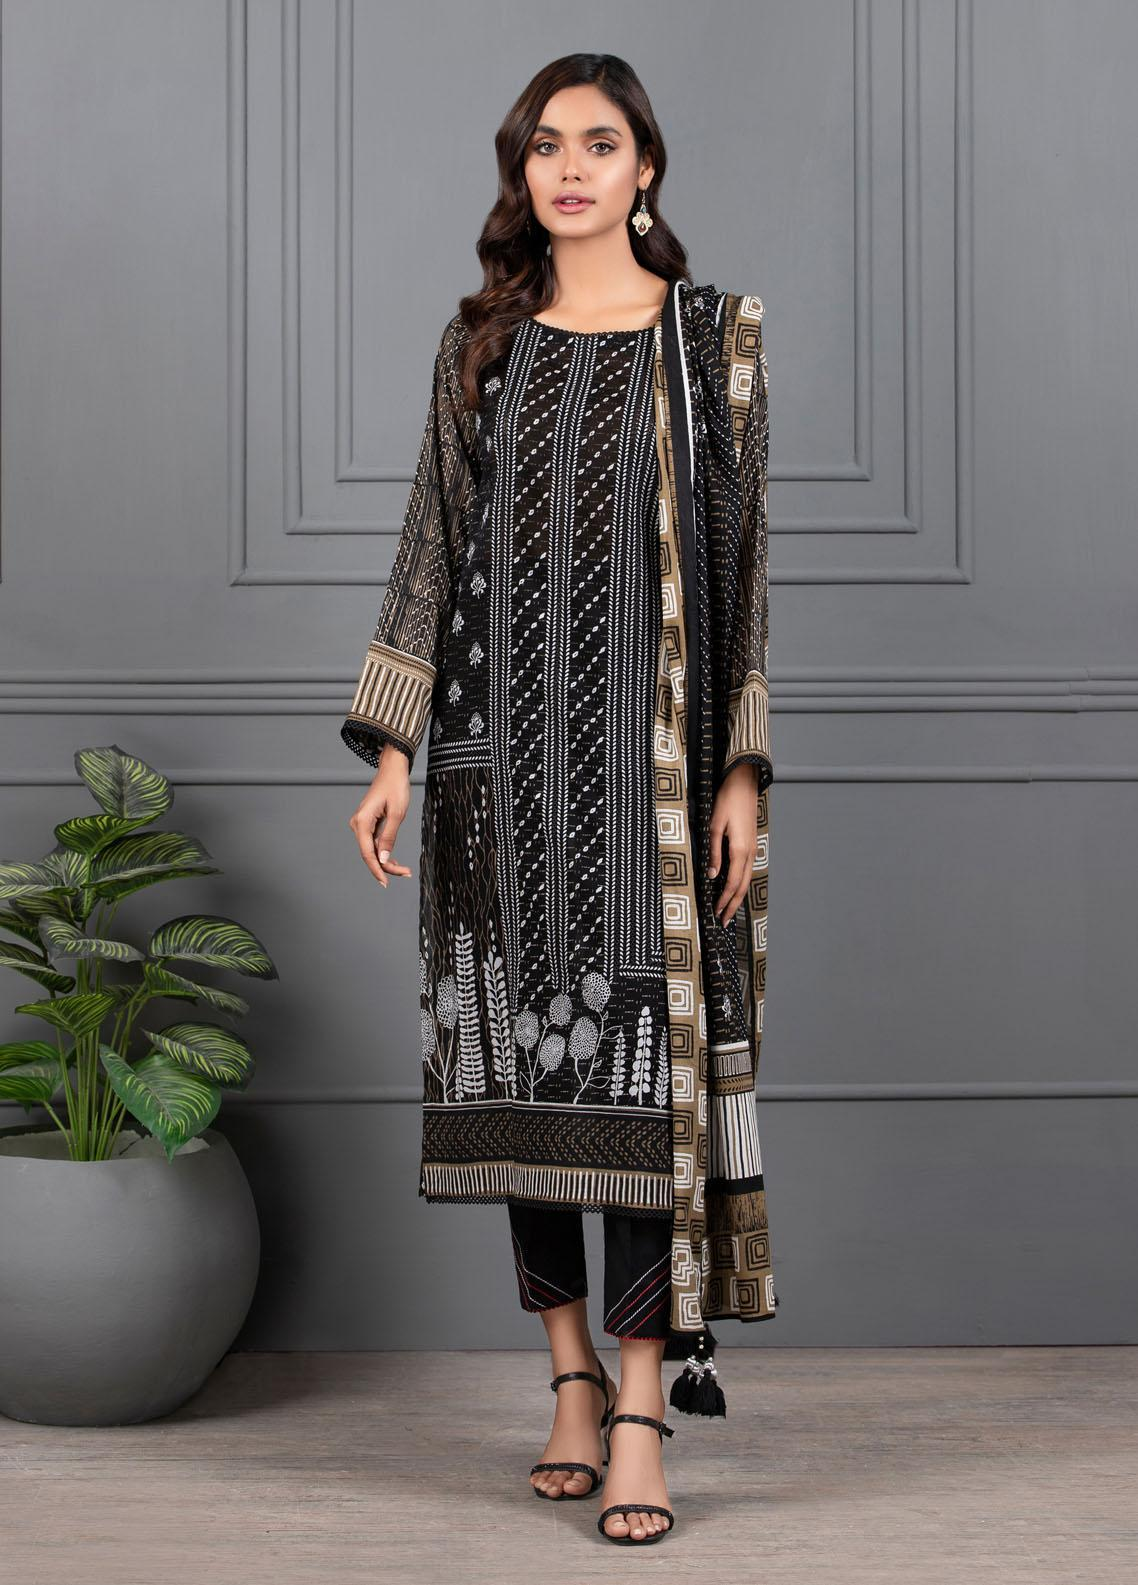 Monochrome By Lakhany Printed Lawn Suits Unstitched 3 Piece LSM21M 7018 - Summer Collection